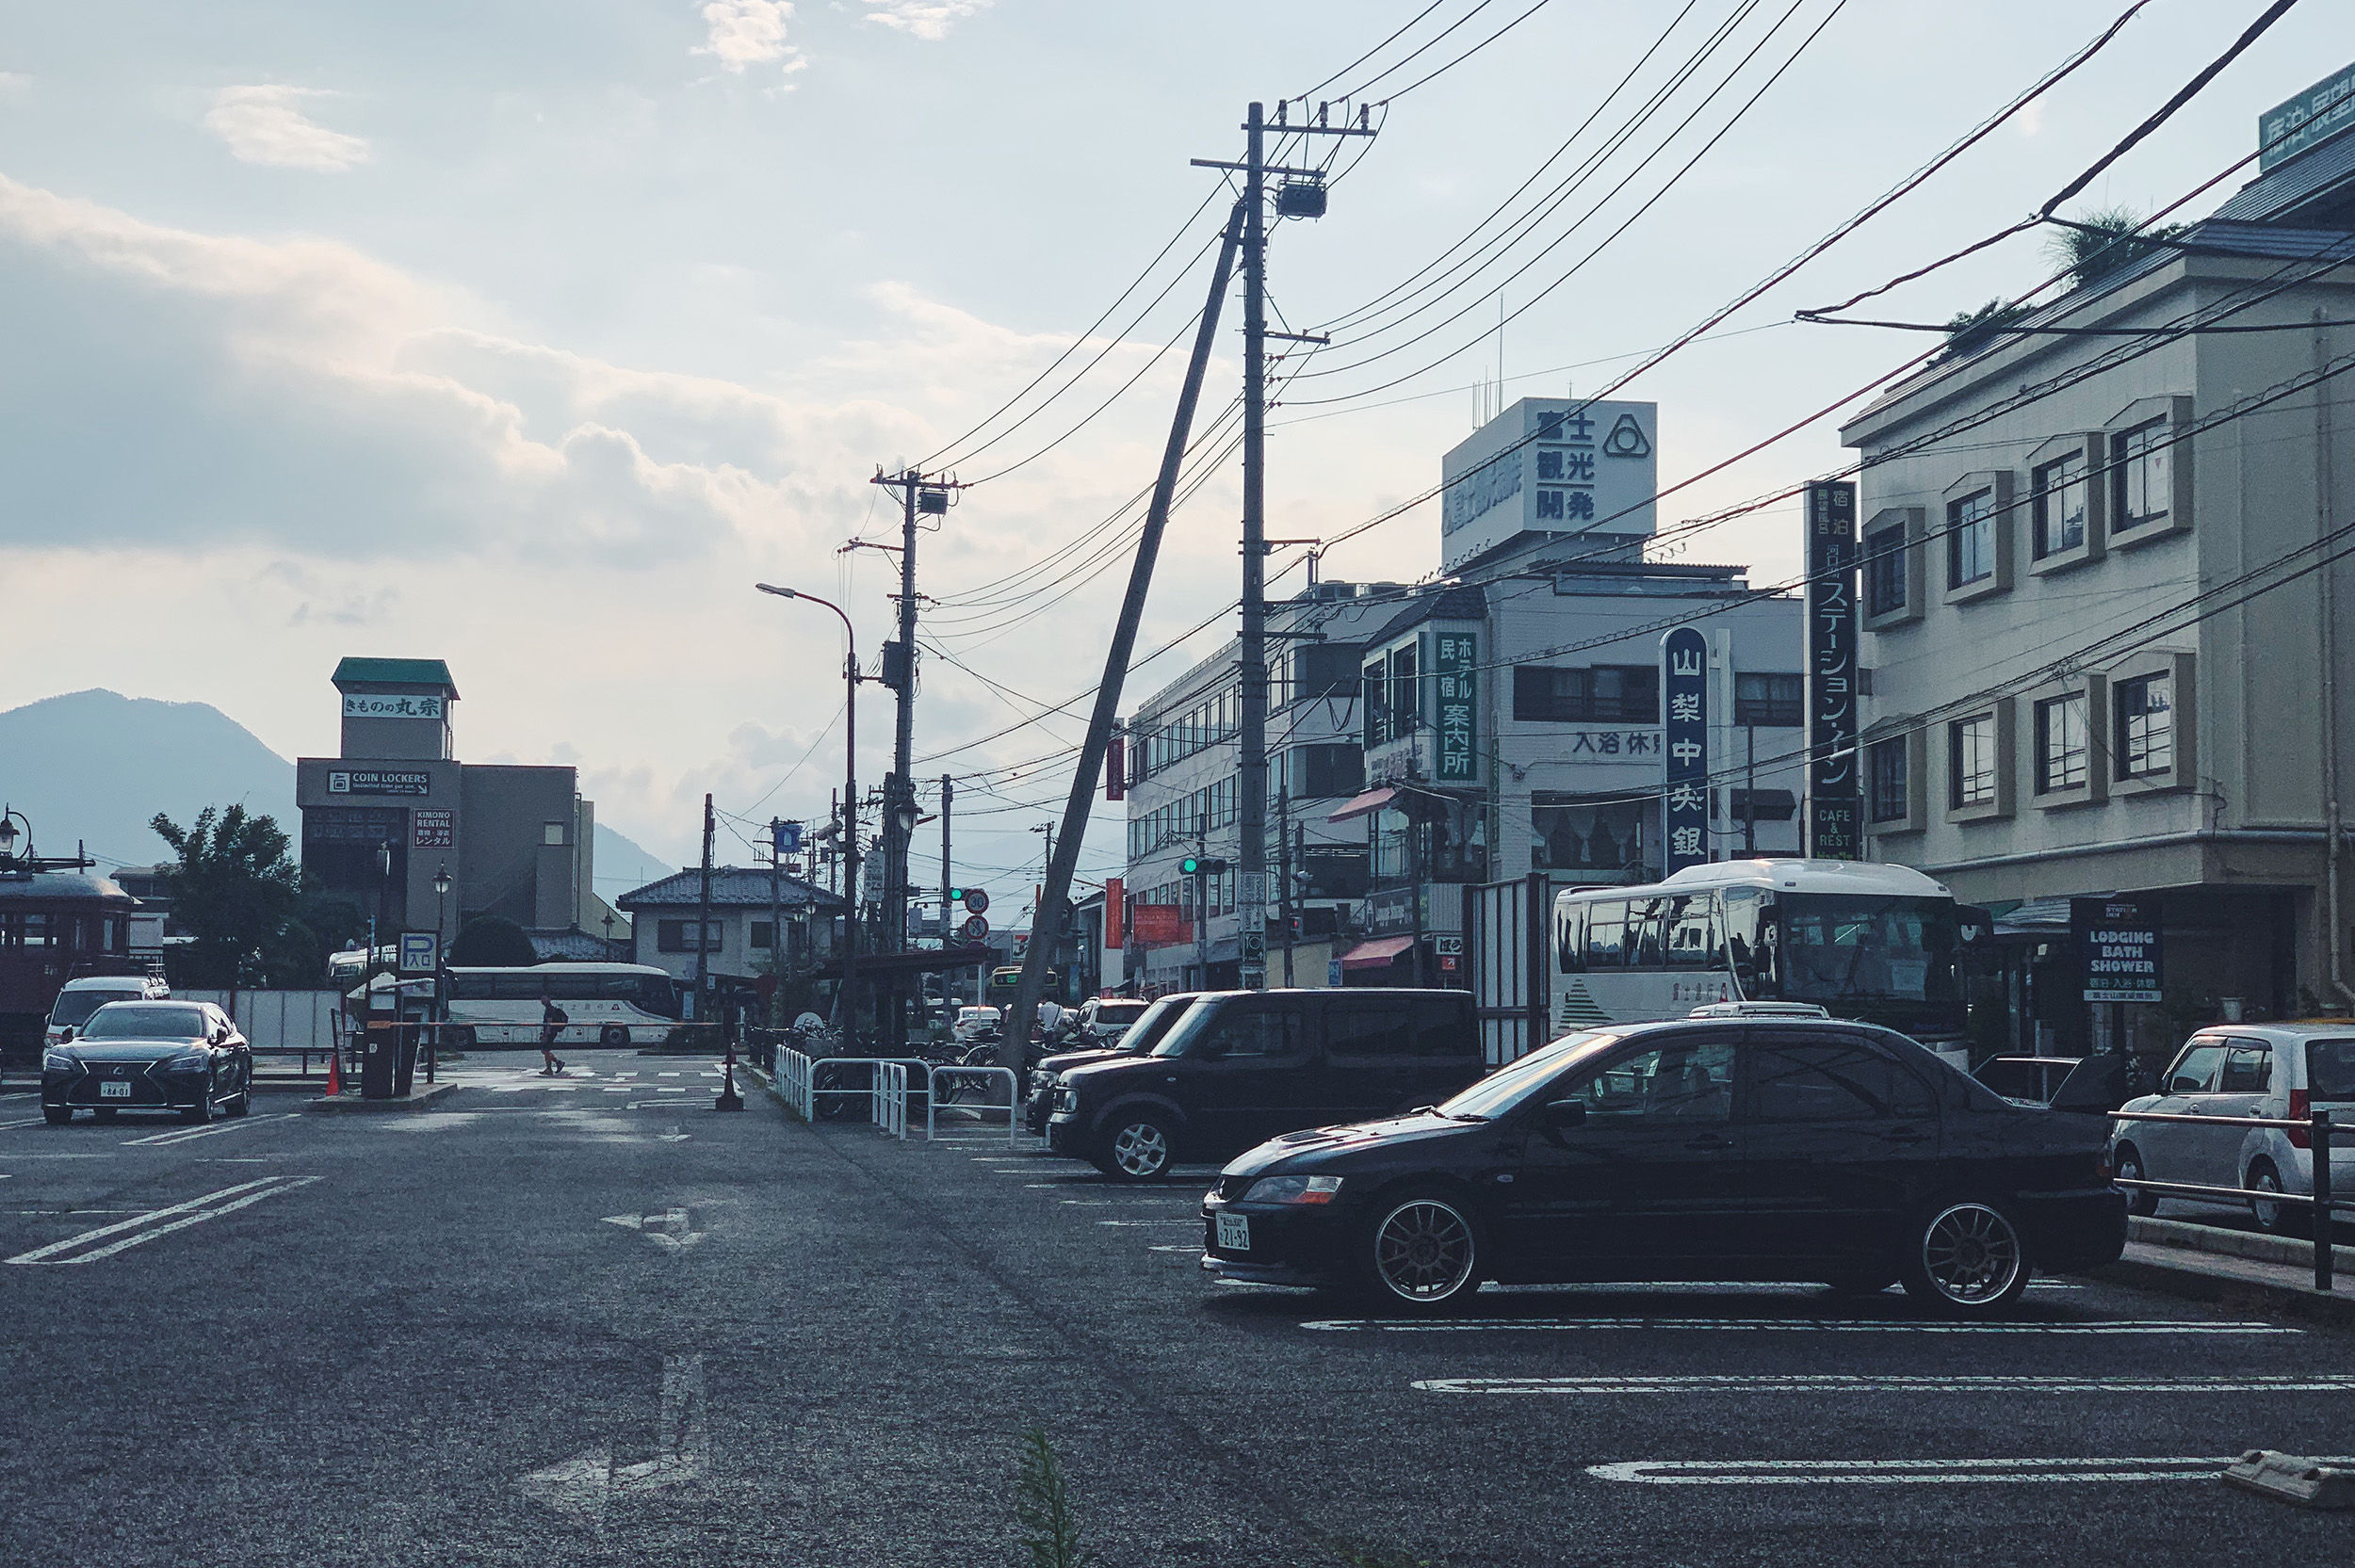 This is exactly how I pictured Japan car culture looks like.